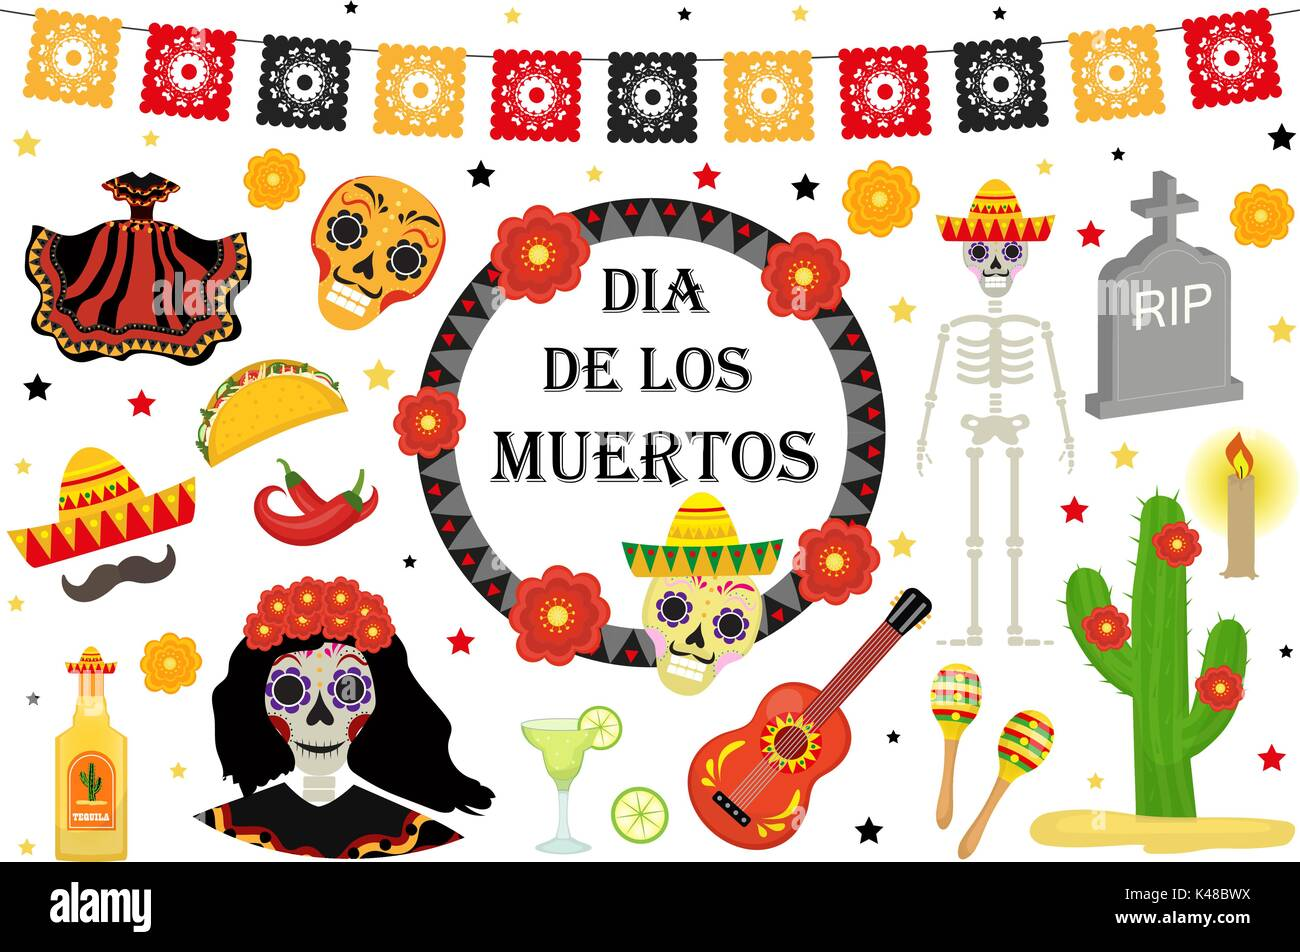 Day Of The Dead Mexican Holiday Icons Flat Style Dia De Los Muertos Collection Objects Design Elements With Sugar Skull Skeleton Grave